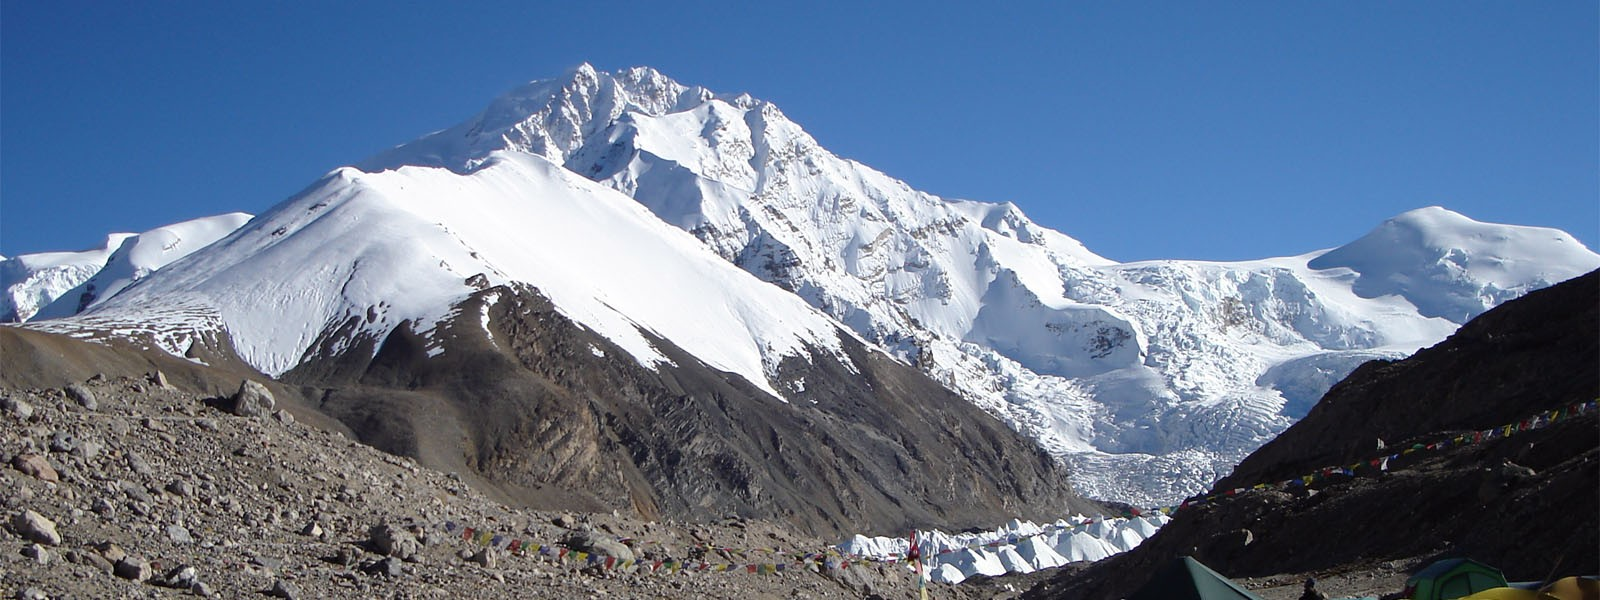 Shishapangma Advance Base Camp